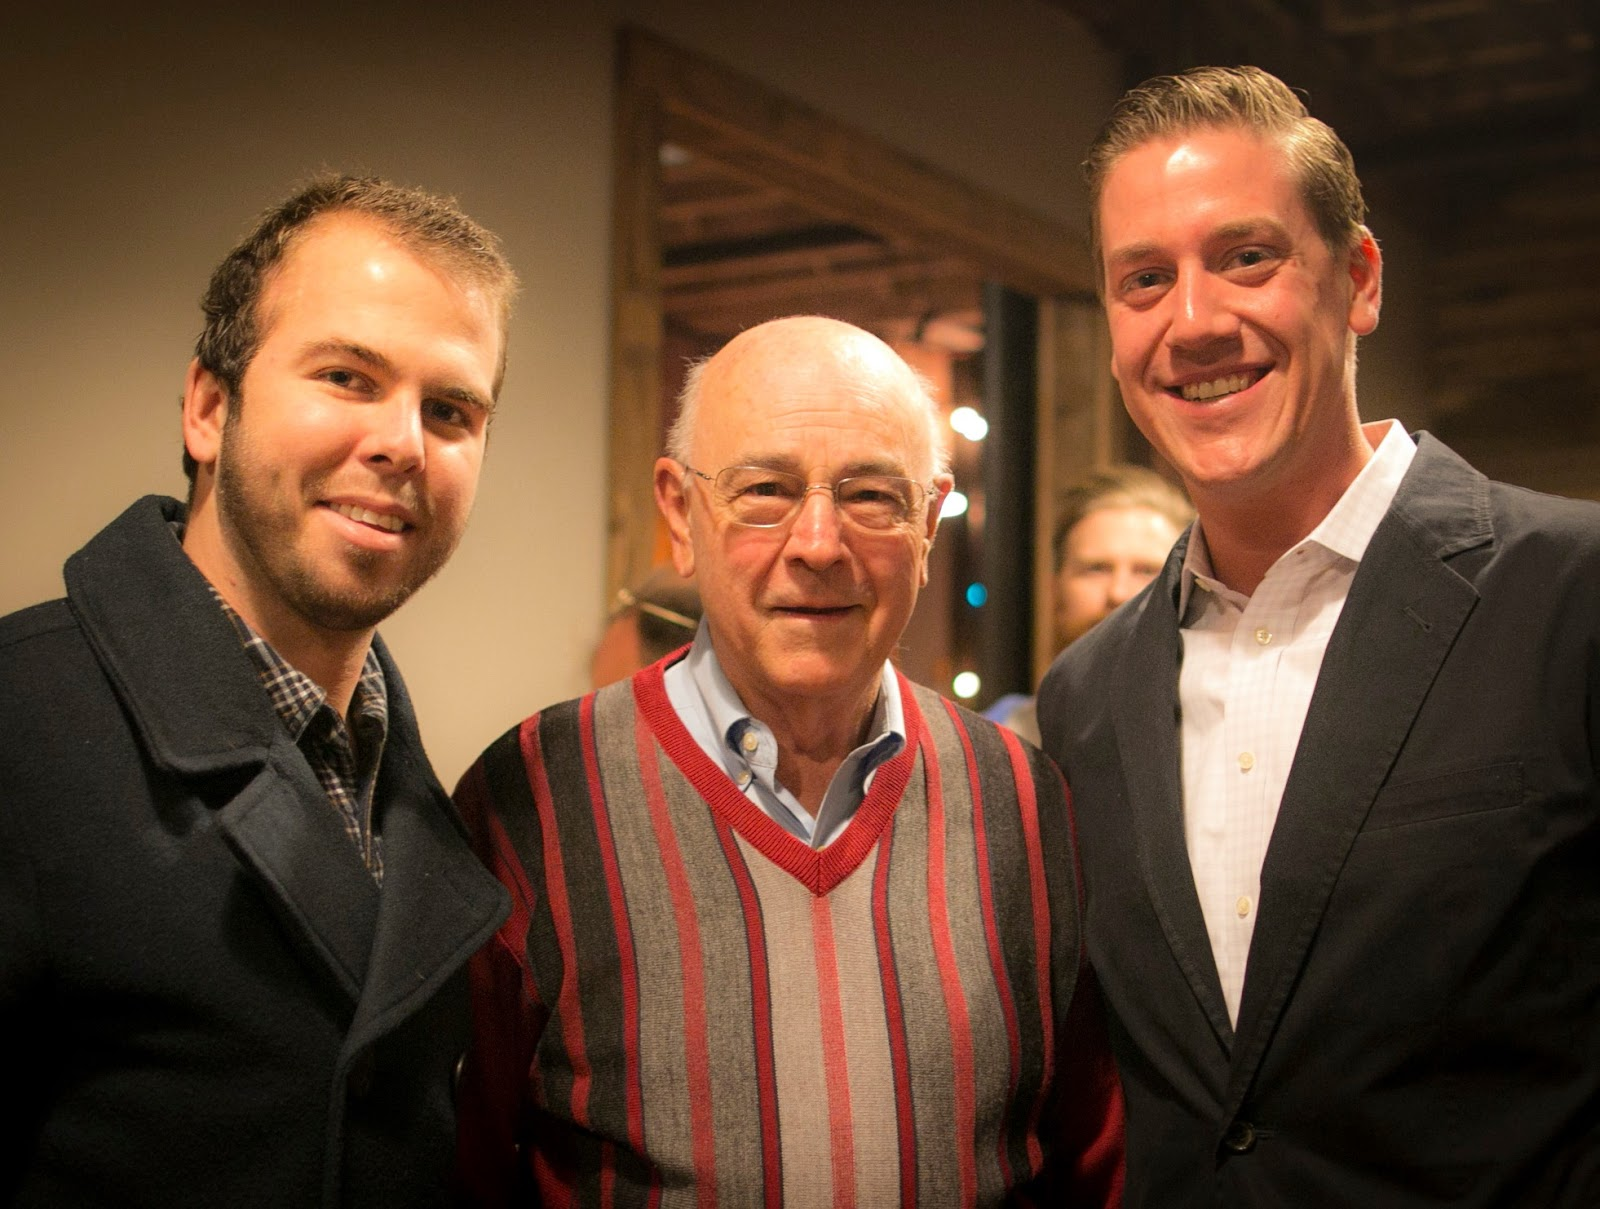 Caleb, Ron Fink (SCORE), and Mason Weeks (AWA Board Member) at a Thank You Event in 2014